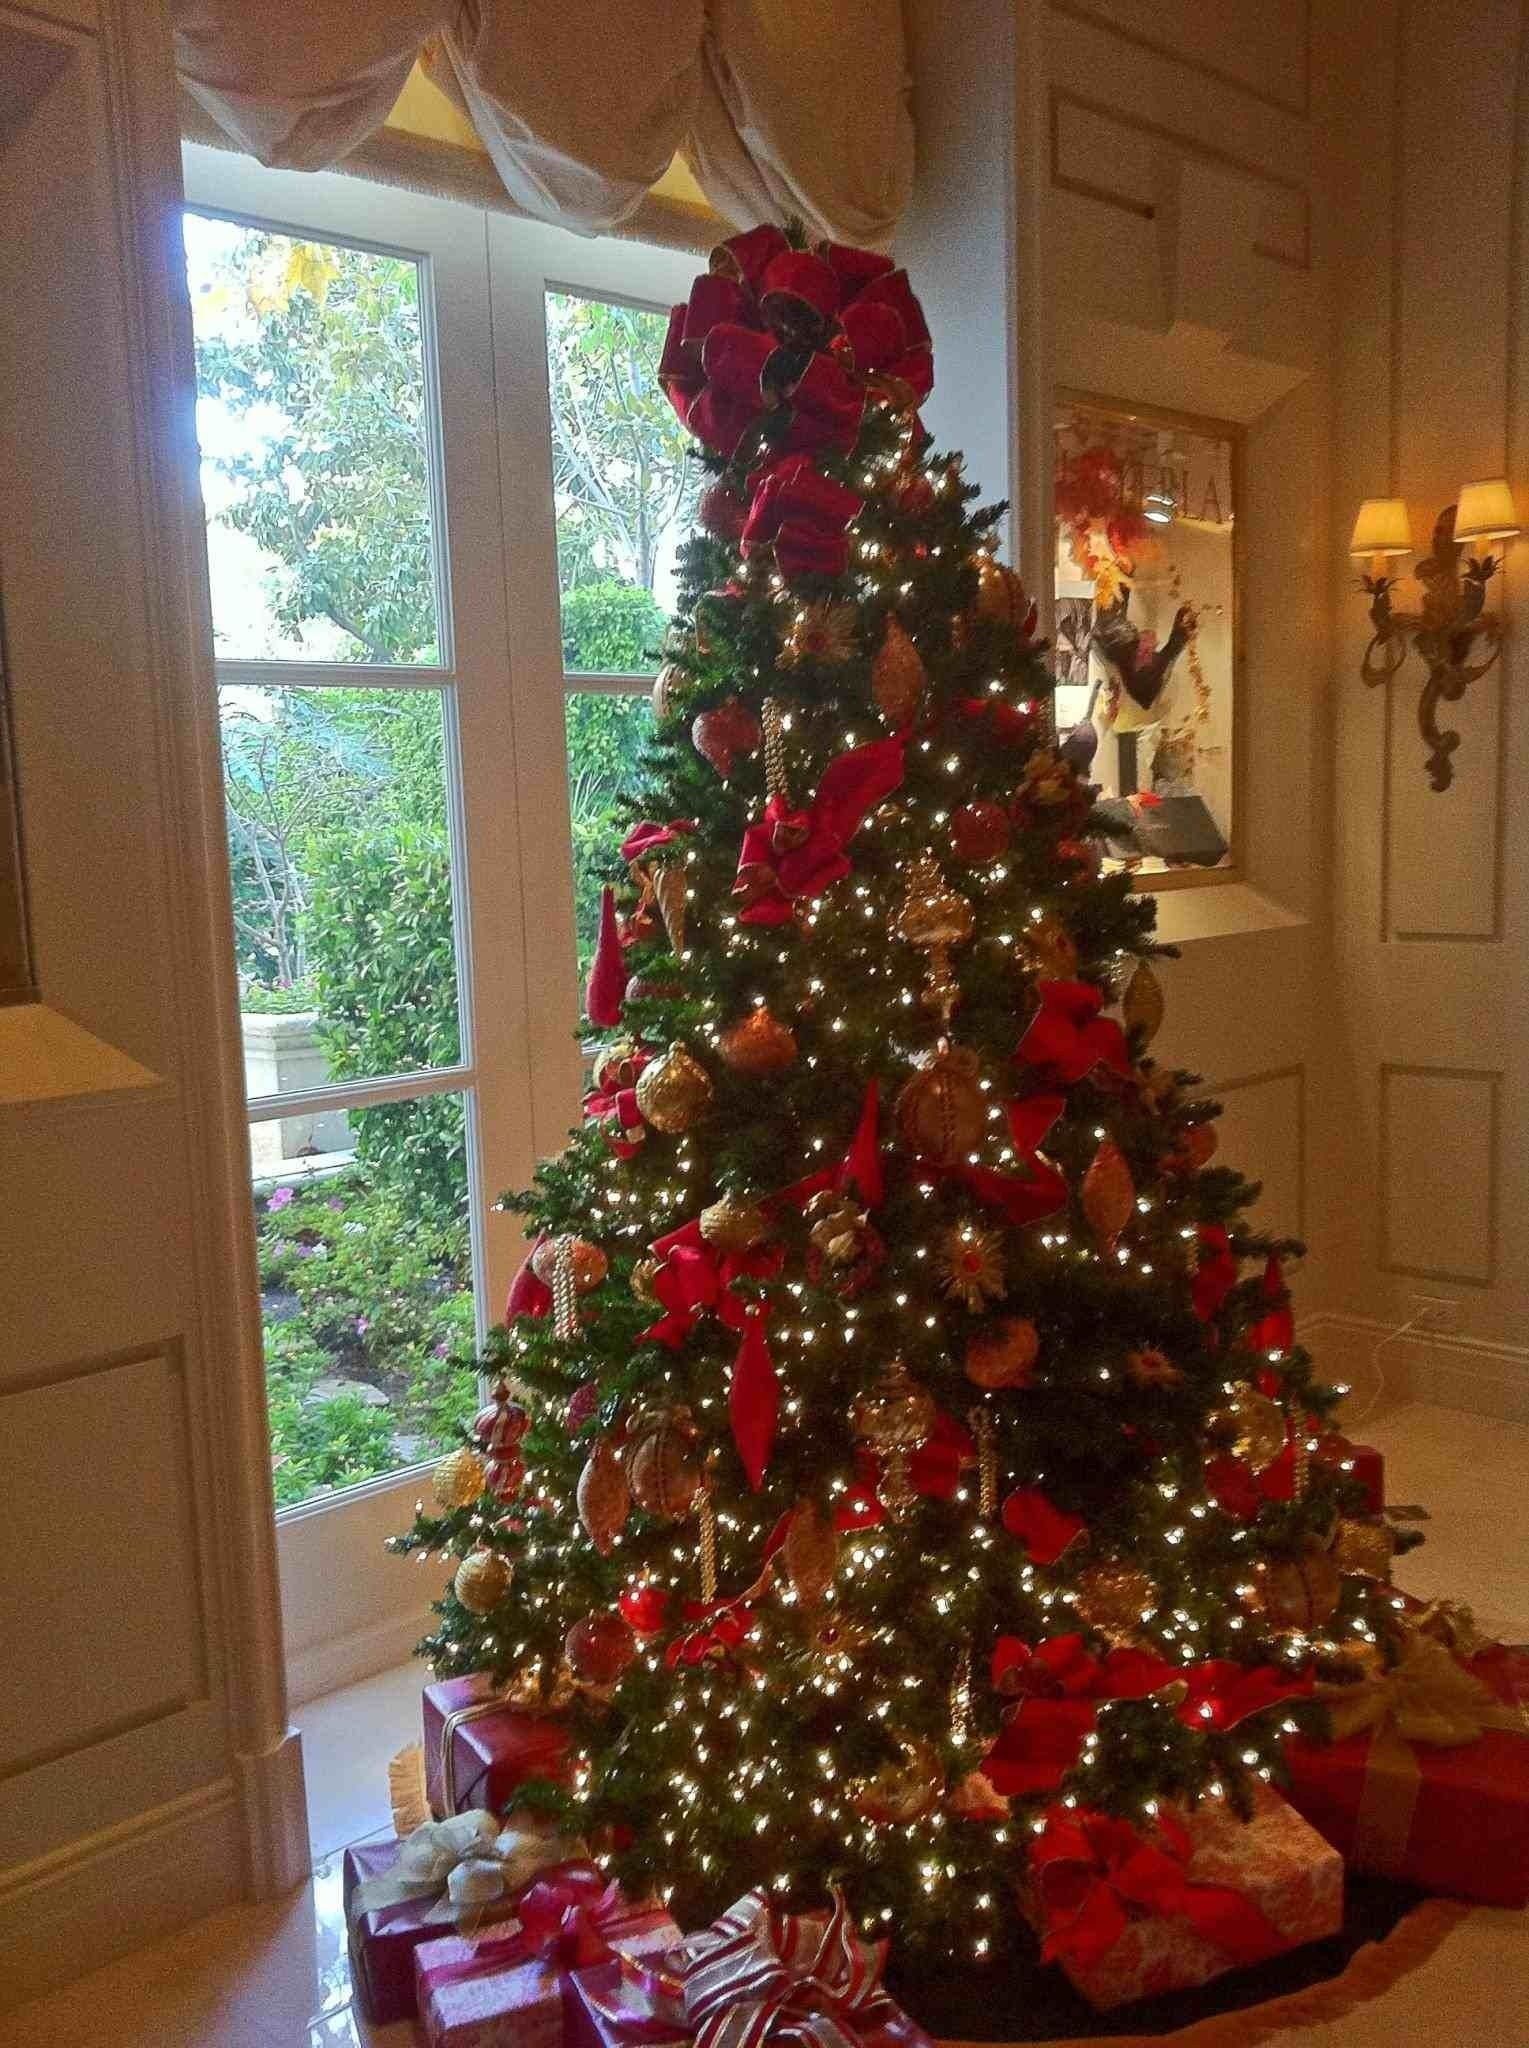 Simple Christmas Tree Decorations Red And Gold.10 Amazing Red And Gold Christmas Tree Decorating Ideas 2019